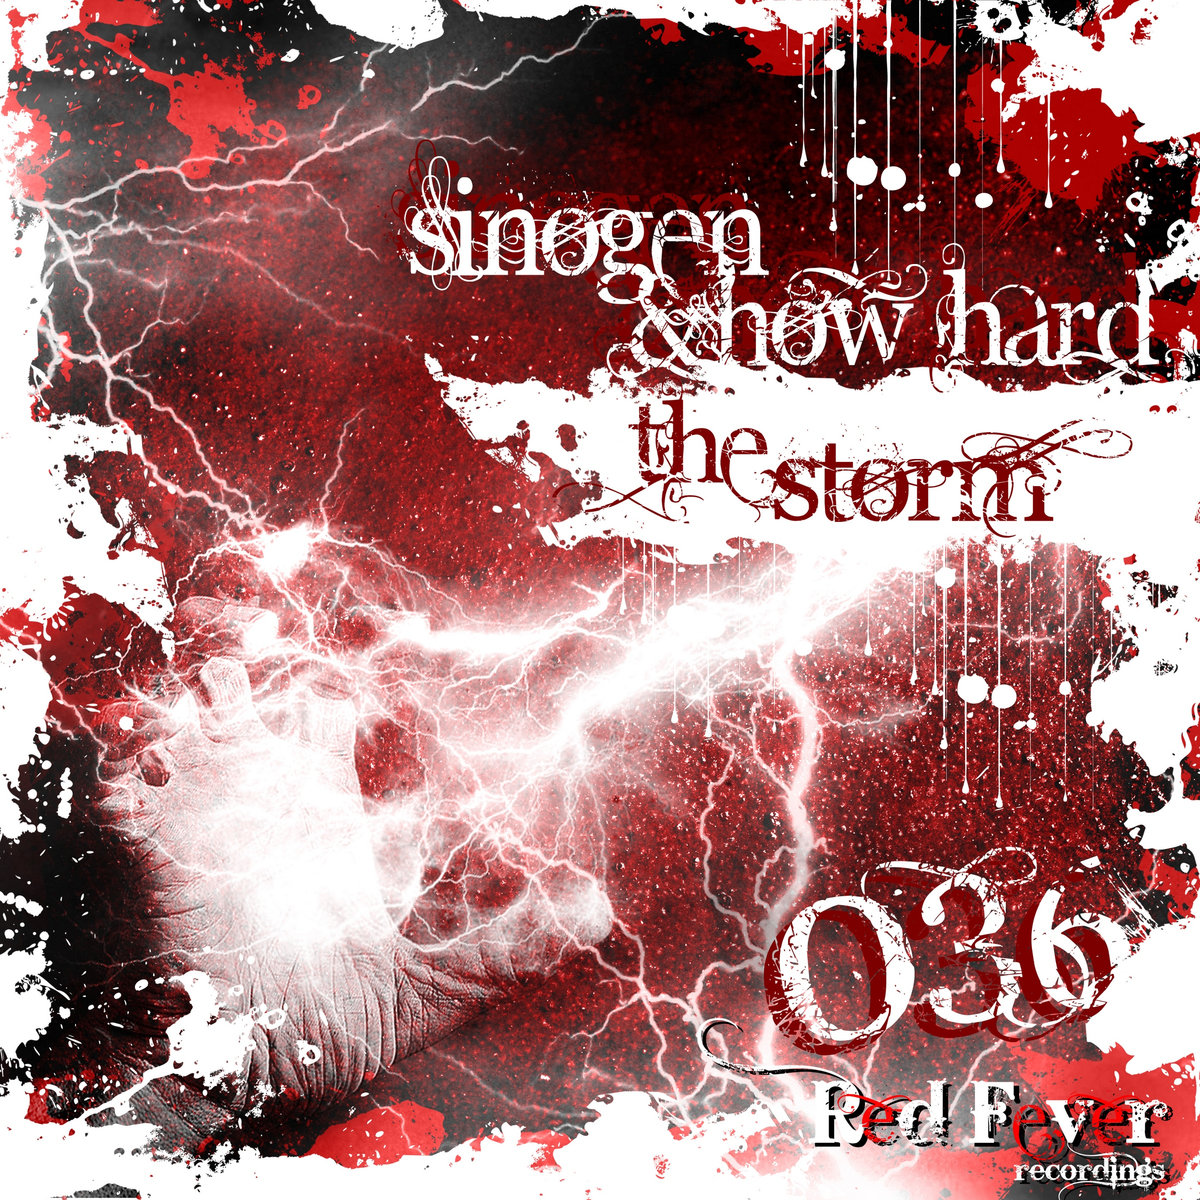 Sinogen & How Hard - Blind Faith (Dissident Remix By Demanufacturer) @ 'The Storm' album (electronic, demanufacturer)